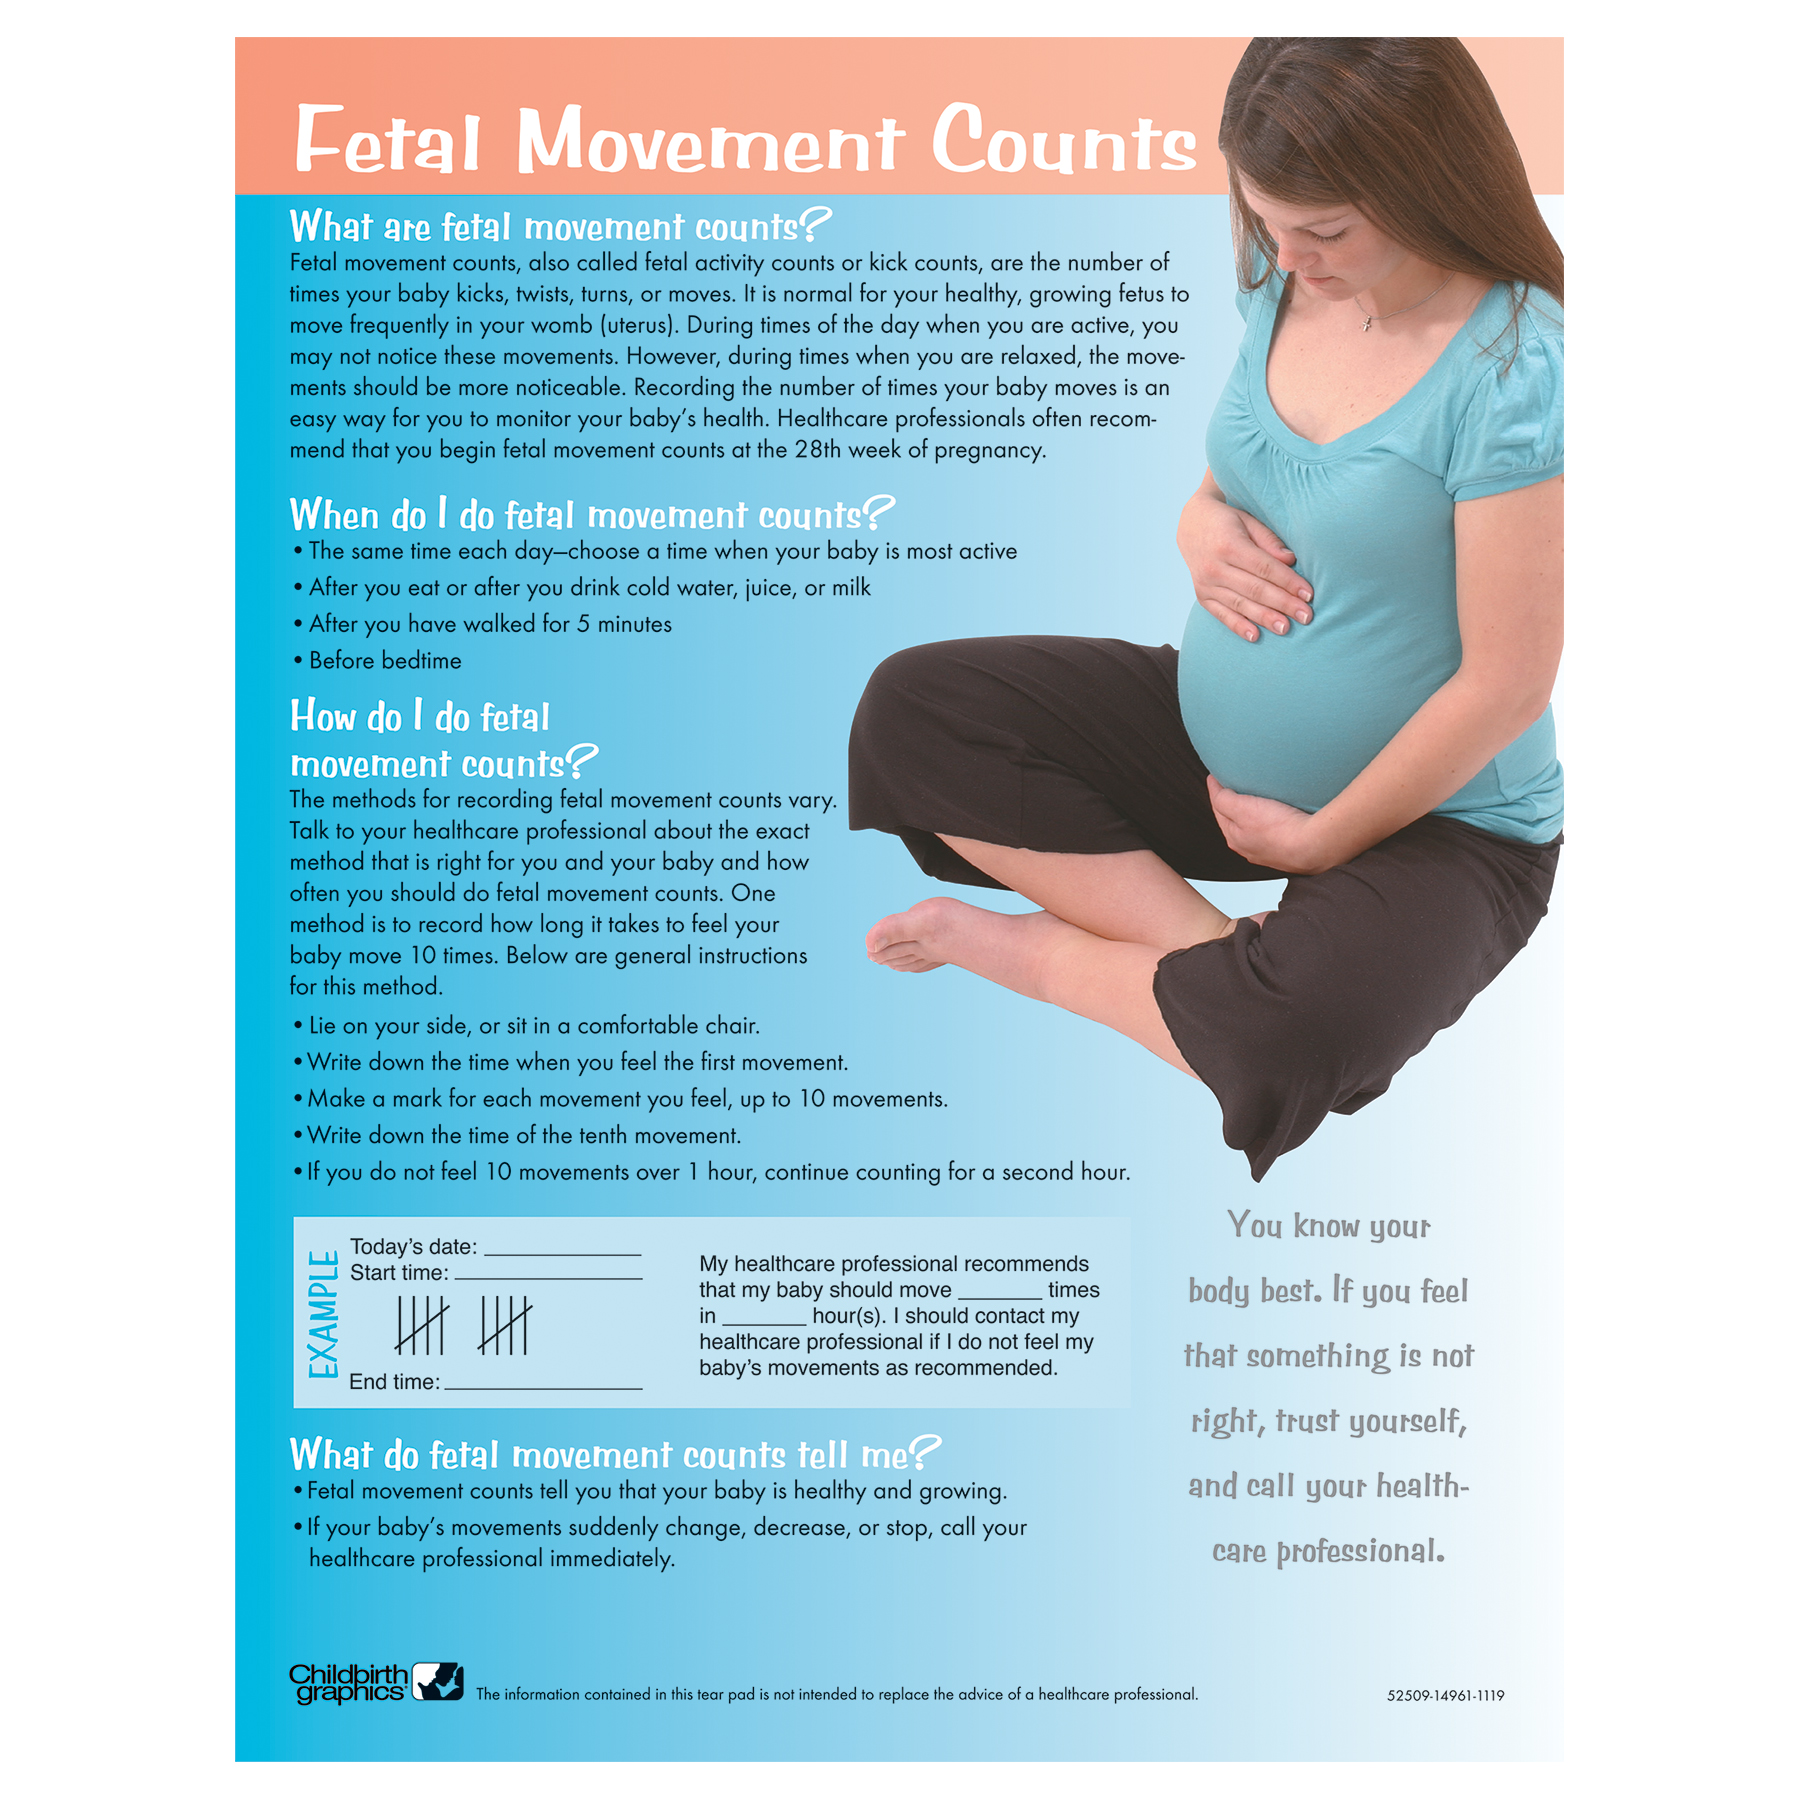 Fetal Movement Counts Tear Pad when how what they mean, Childbirth Graphics, 52509